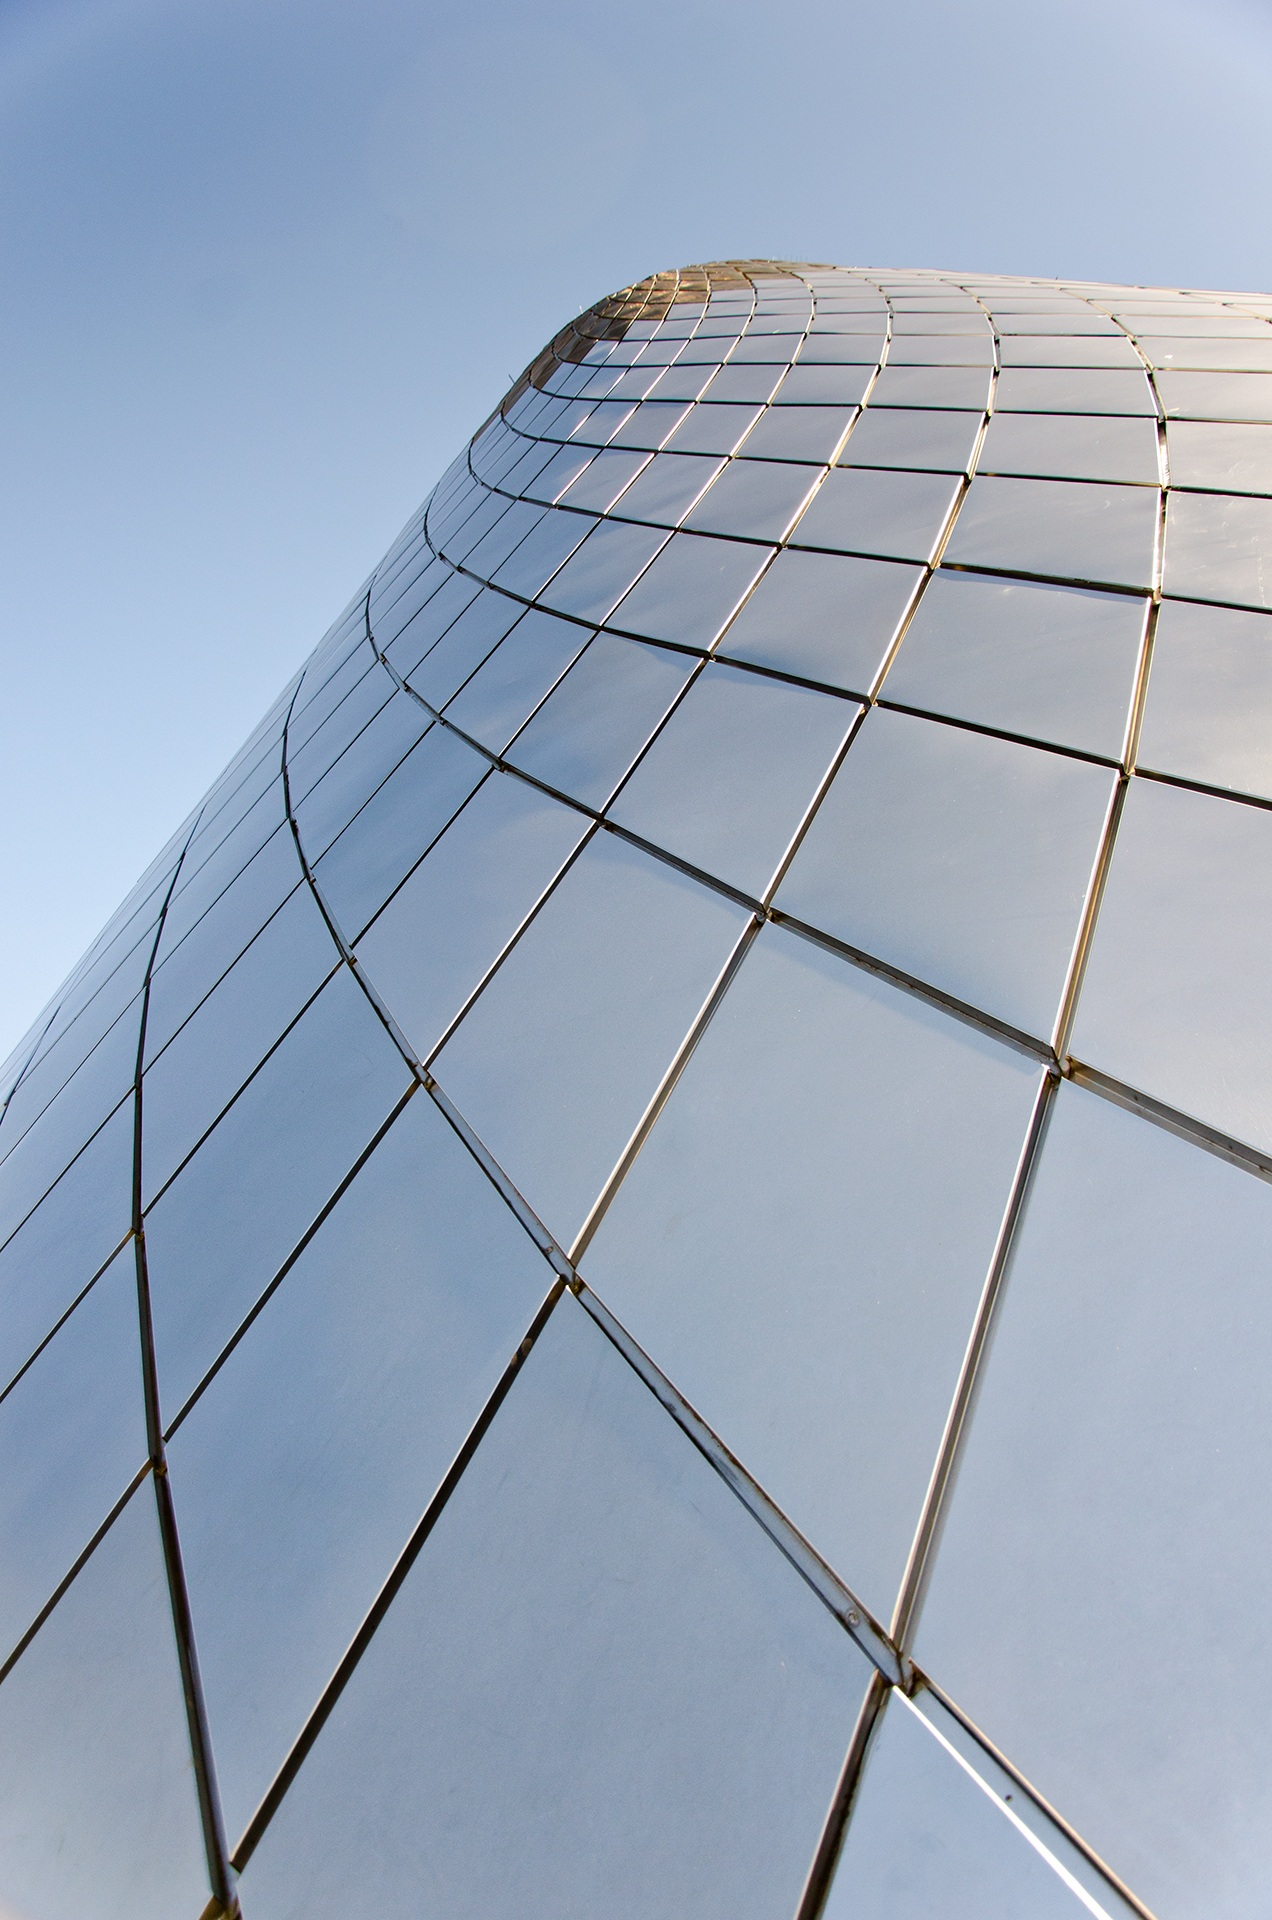 Low Angle Photography of White Building